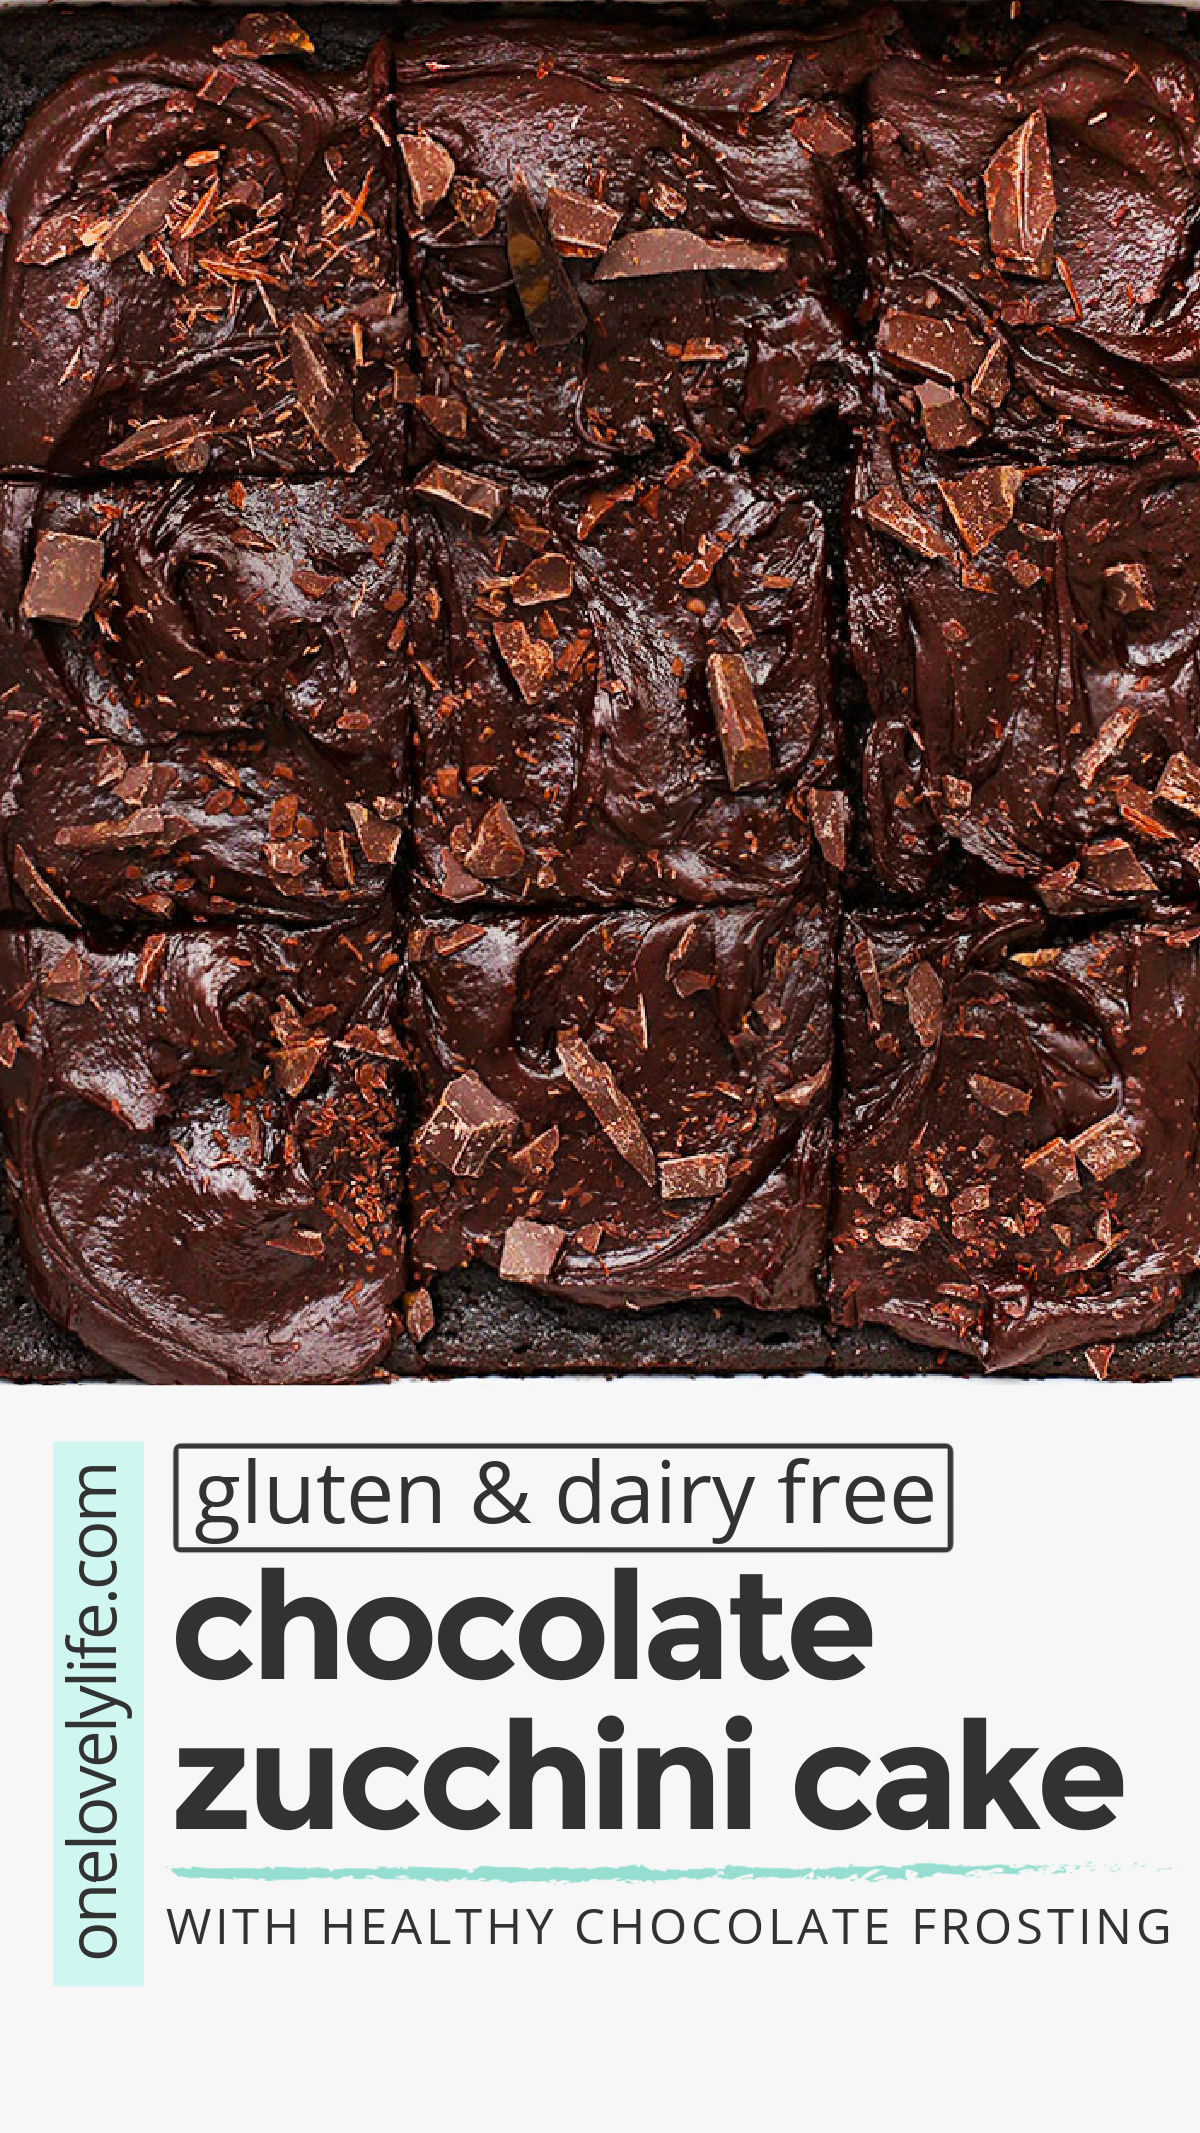 The BEST Gluten Free Chocolate Zucchini Cake. This gorgeous almond flour chocolate zucchini cake is packed with chocolate flavor. It's rich and decadent and 100% naturally sweetened! You'll love the paleo chocolate frosting! // gluten free cake recipe // gluten free chocolate cake recipe // dairy free chocolate cake recipe // almond flour cake // gluten free zucchini cake recipe #chocolate #zucchini #zucchinicake #chocolatecake #glutenfreecake #glutenfreechocolatecake #paleocake #almondflourcake